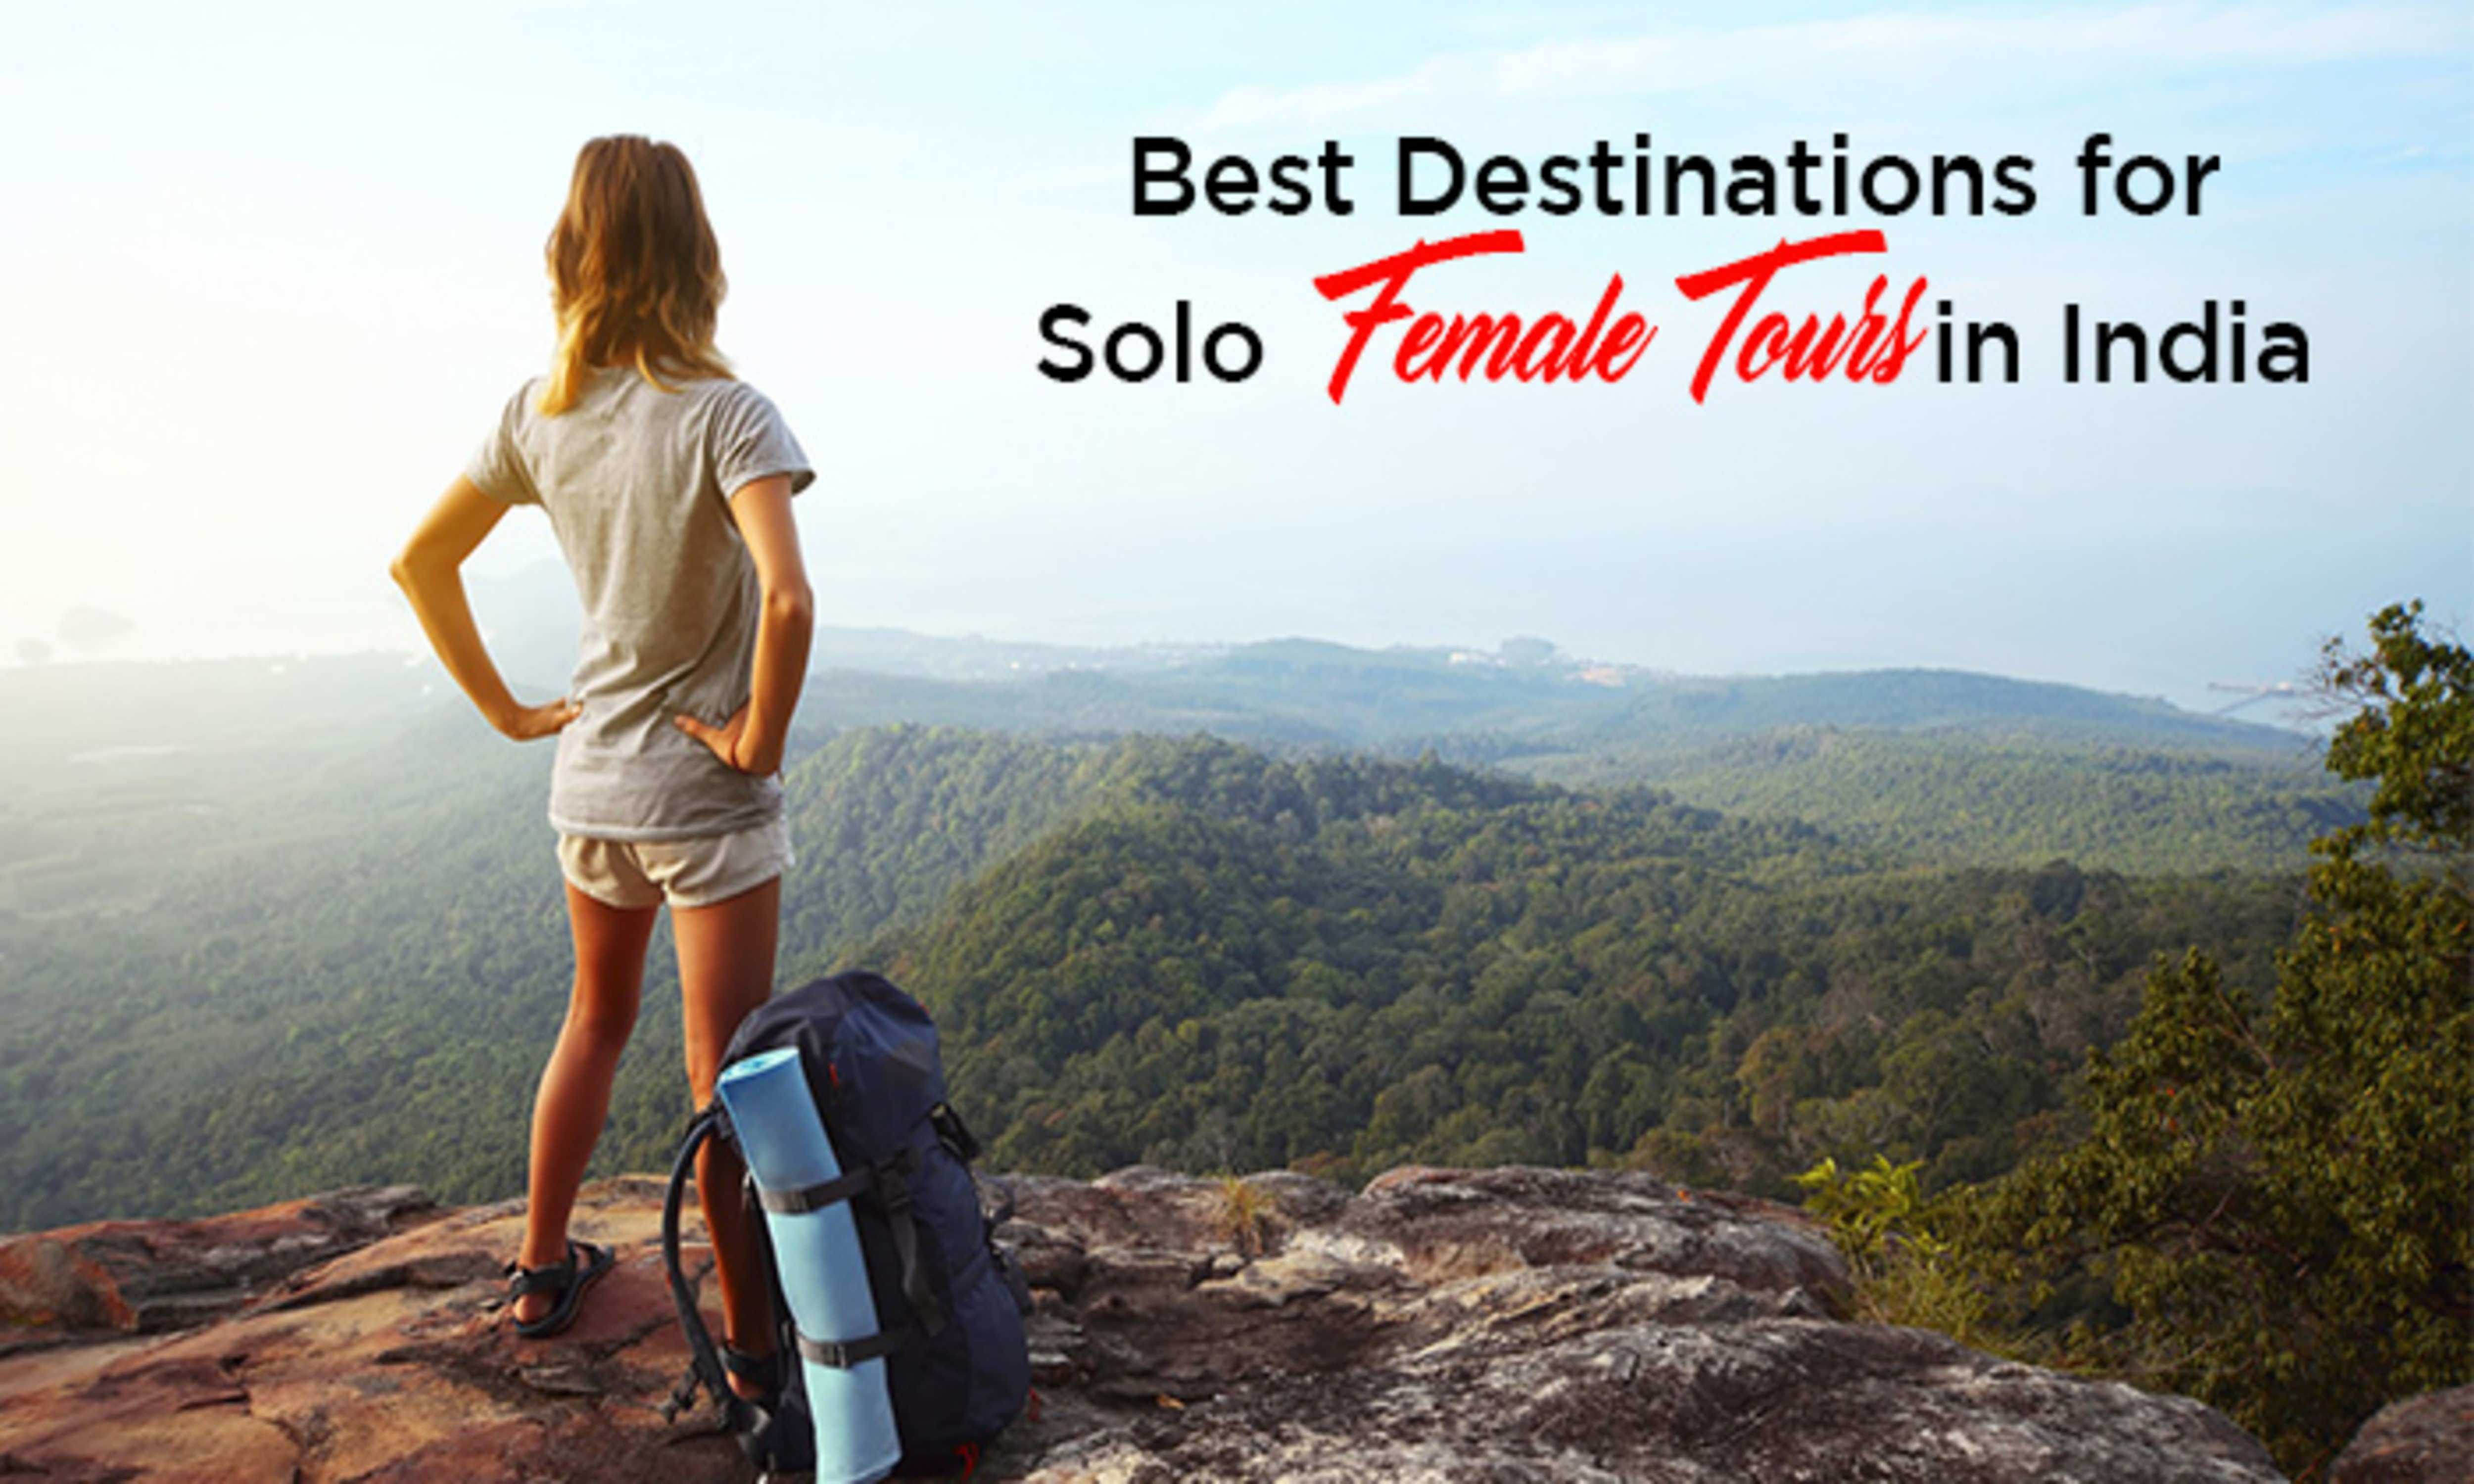 Solo female travel packages